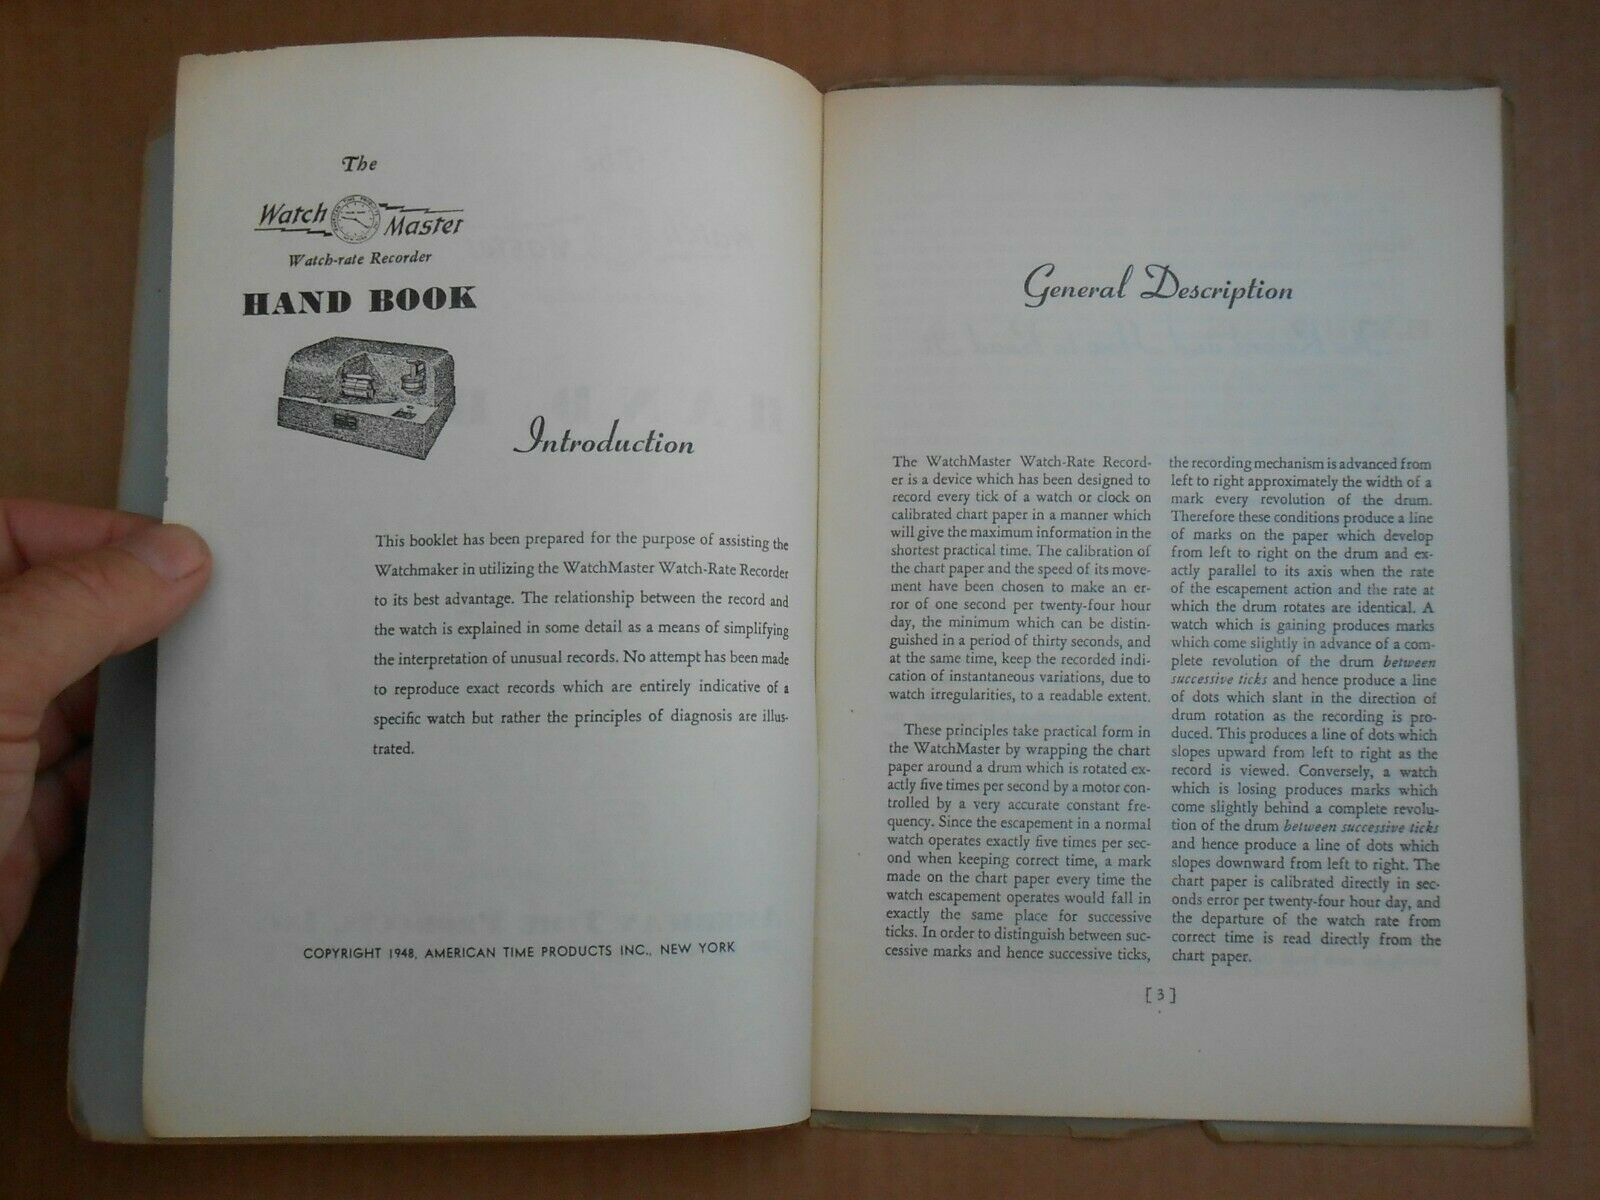 Vintage 1948 Timepiece Watch Master Hand Book WatchMaster Watch-Rate Recorder image 3